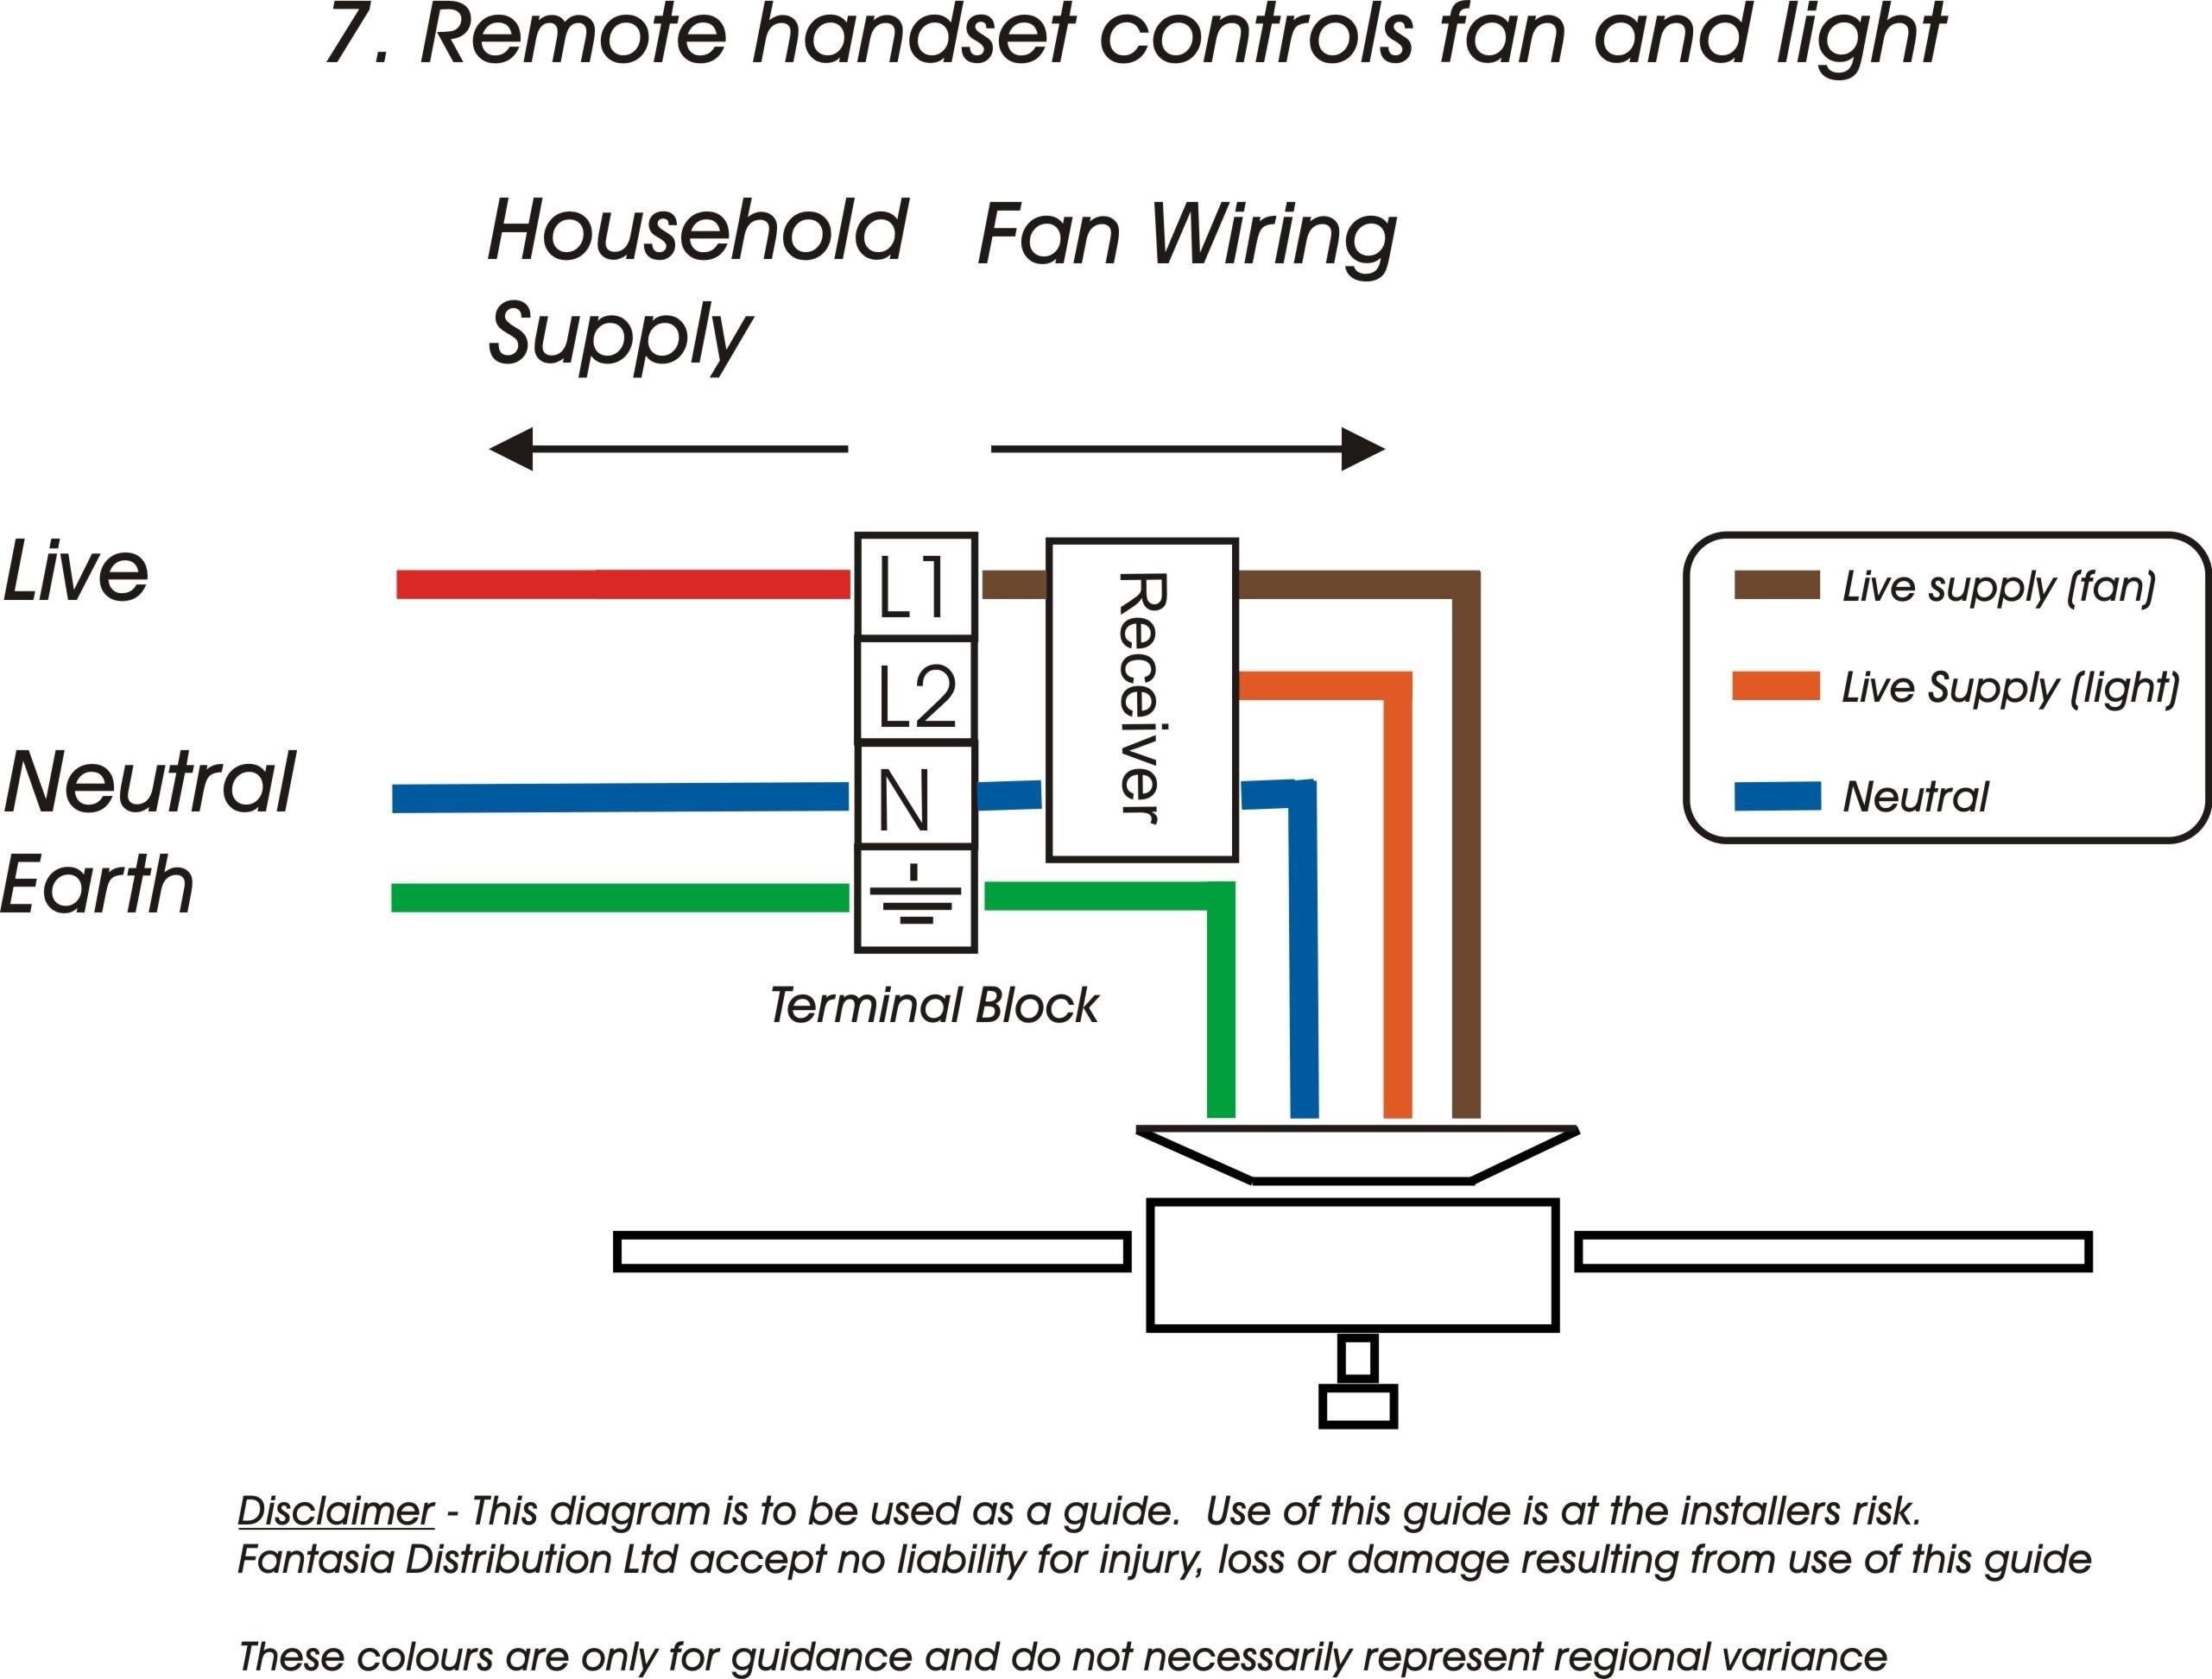 Enjoyable Household Fan Wiring Diagrams Wiring Diagrams The Wiring Cloud Domeilariaidewilluminateatxorg